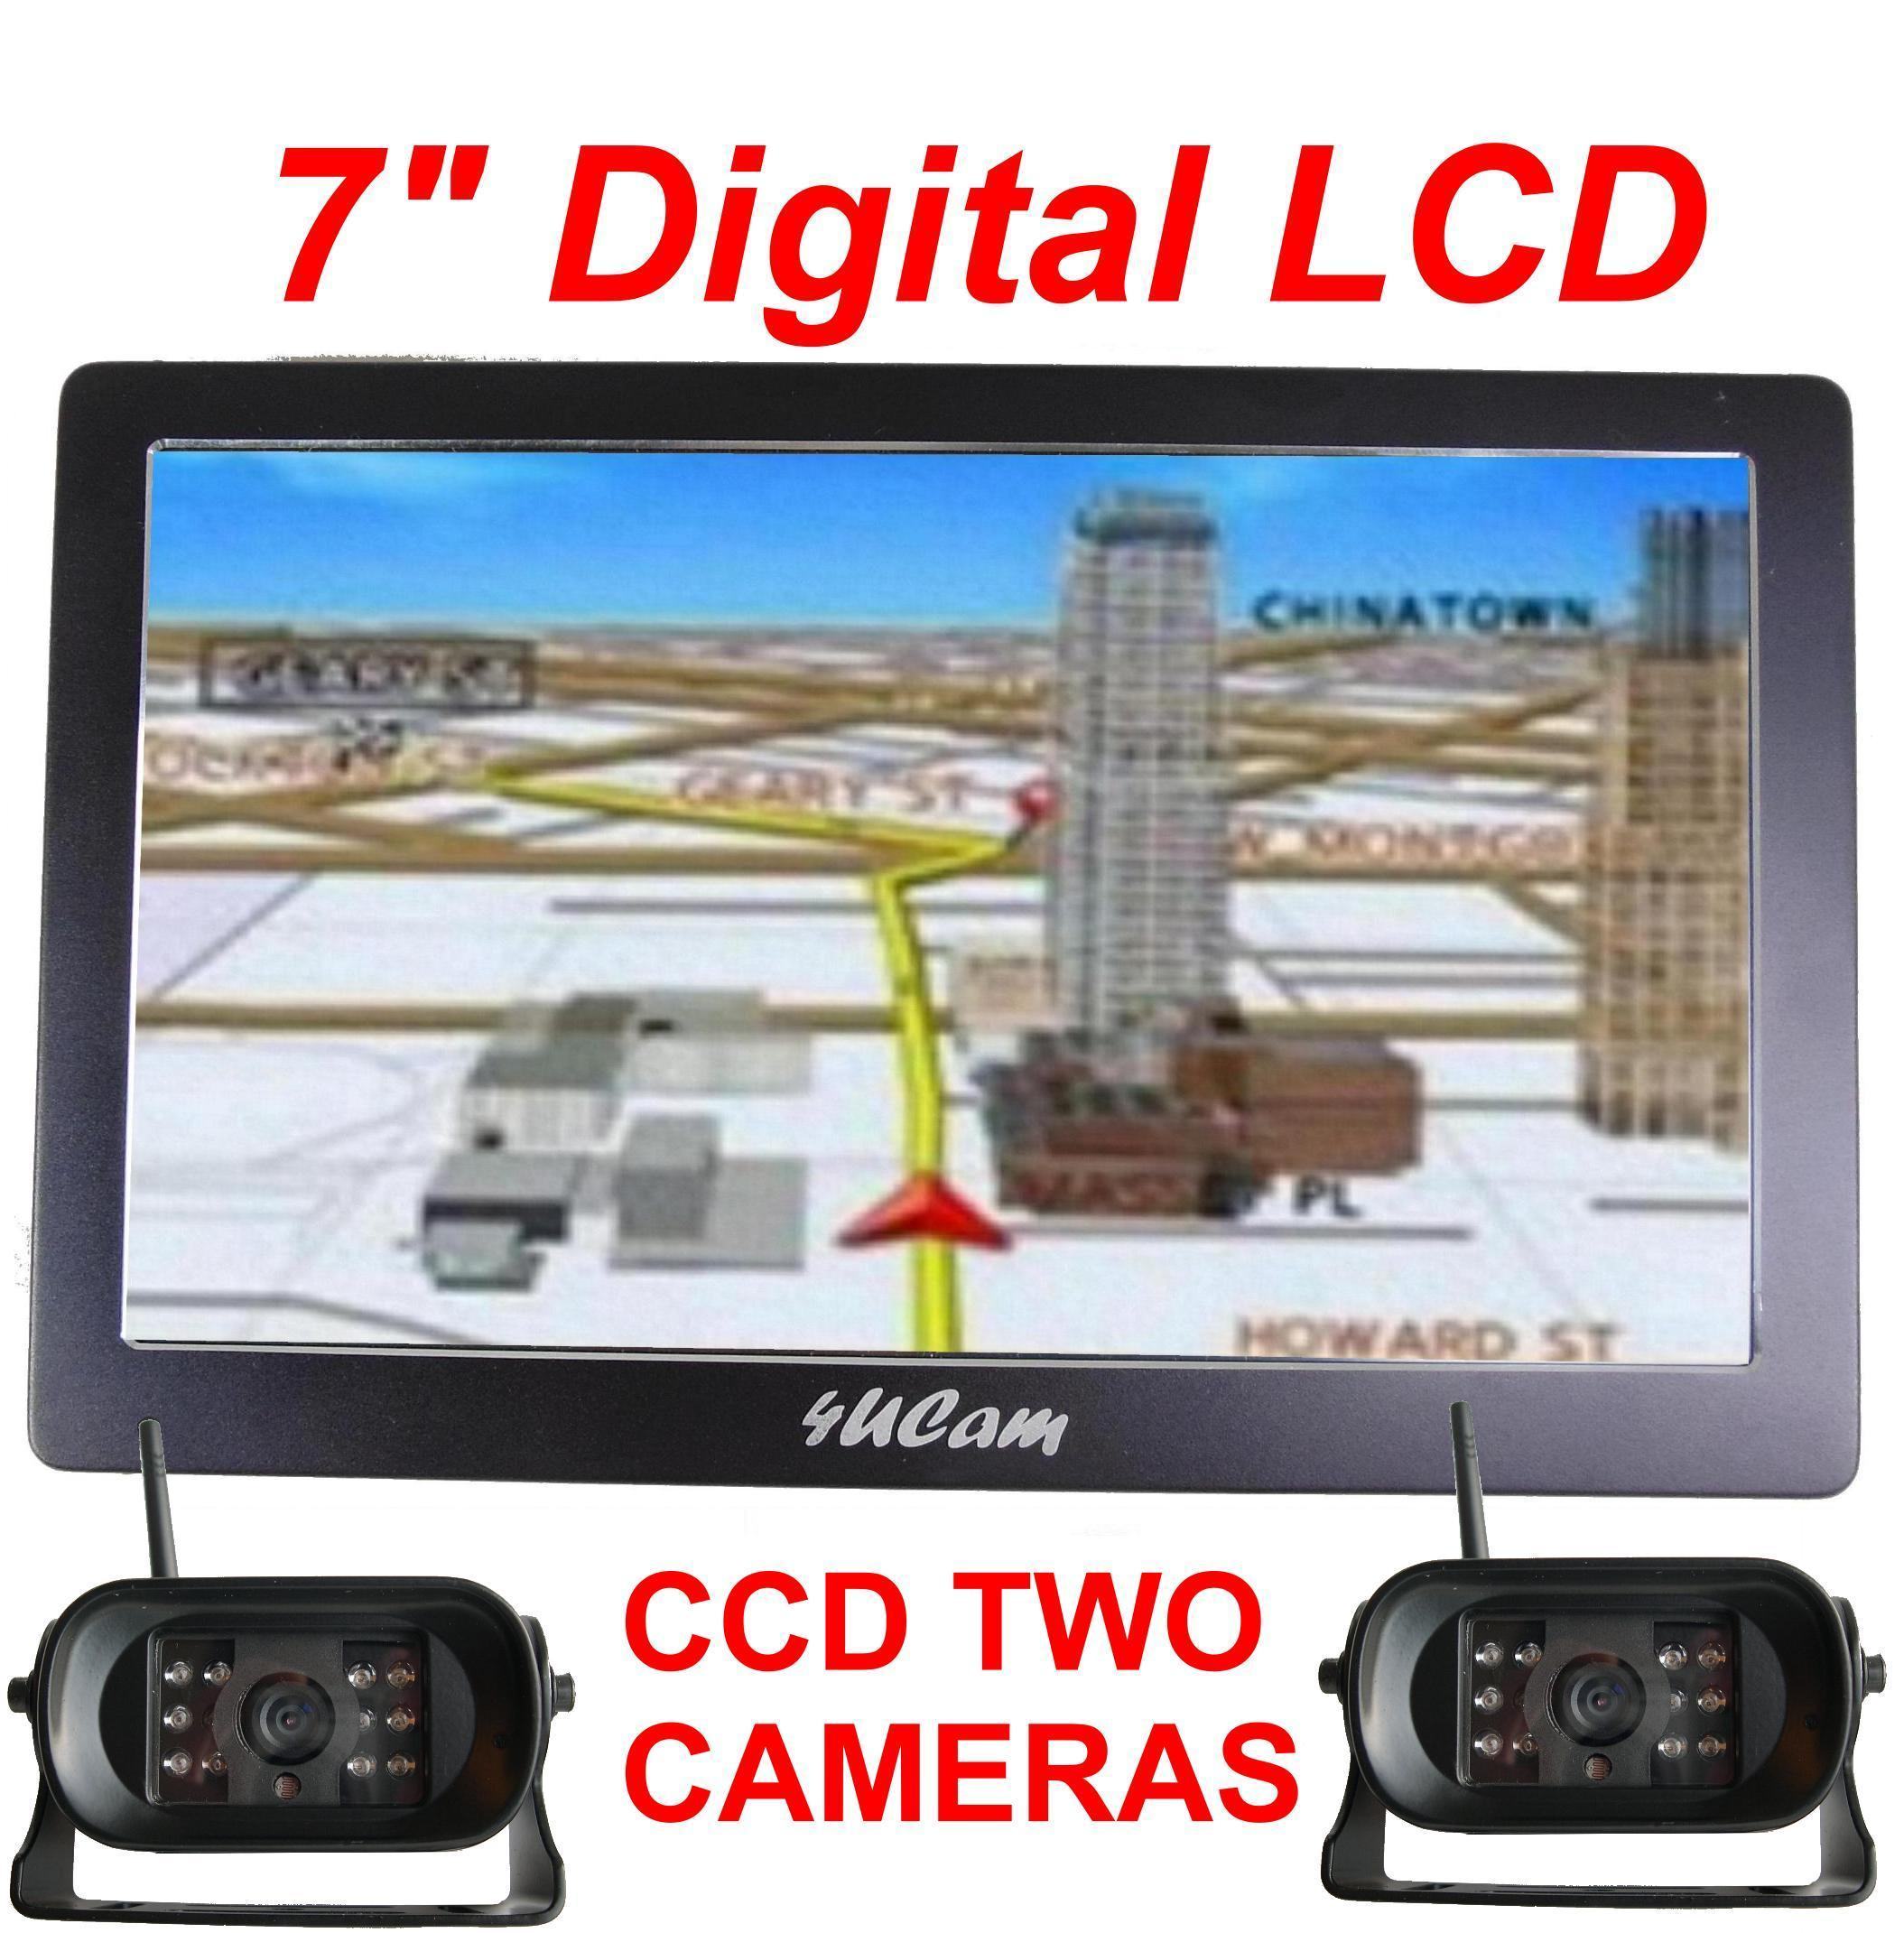 7 Inch Gps Wireless Backup Round Camera Color Monitor Rv Truck Reversing Tft Lcd Wiring Diagram Hd Digital Touch Screen Dual Ccd W Bluetooth System Item Gps7d 9901dual Listed Price 69999 Now 34995